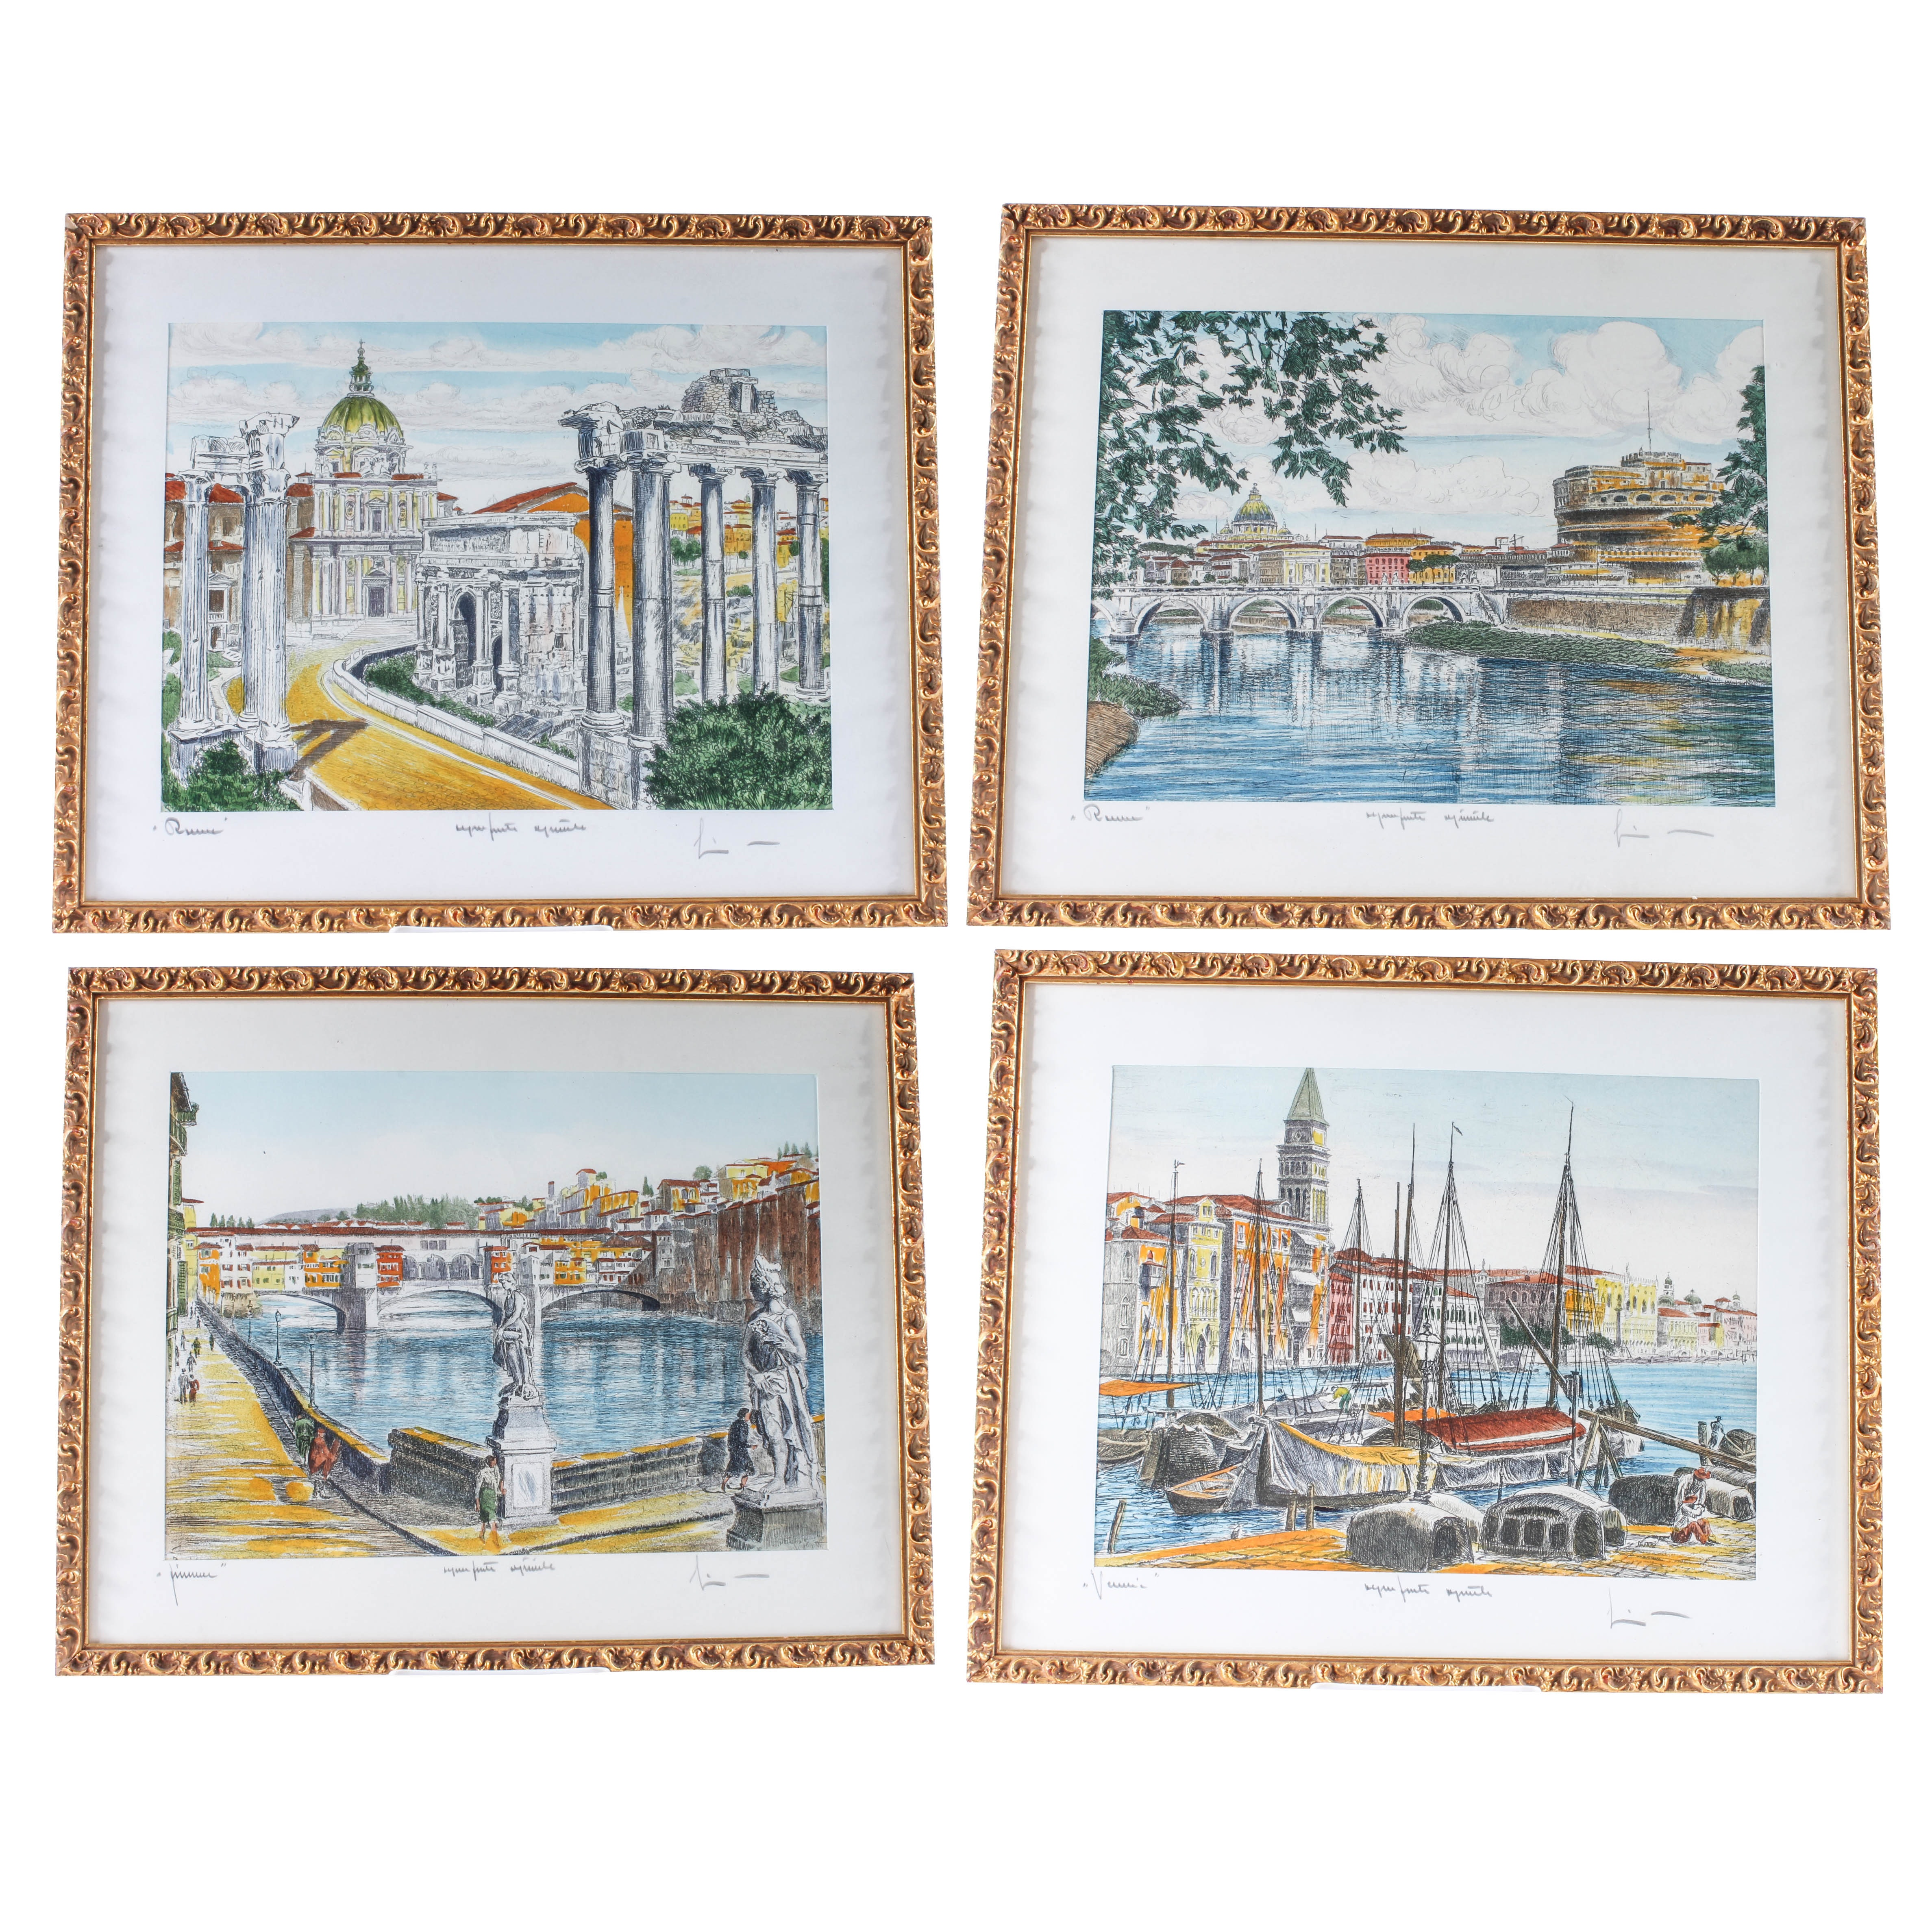 Four Signed Hand-Painted Etchings of European Cityscapes